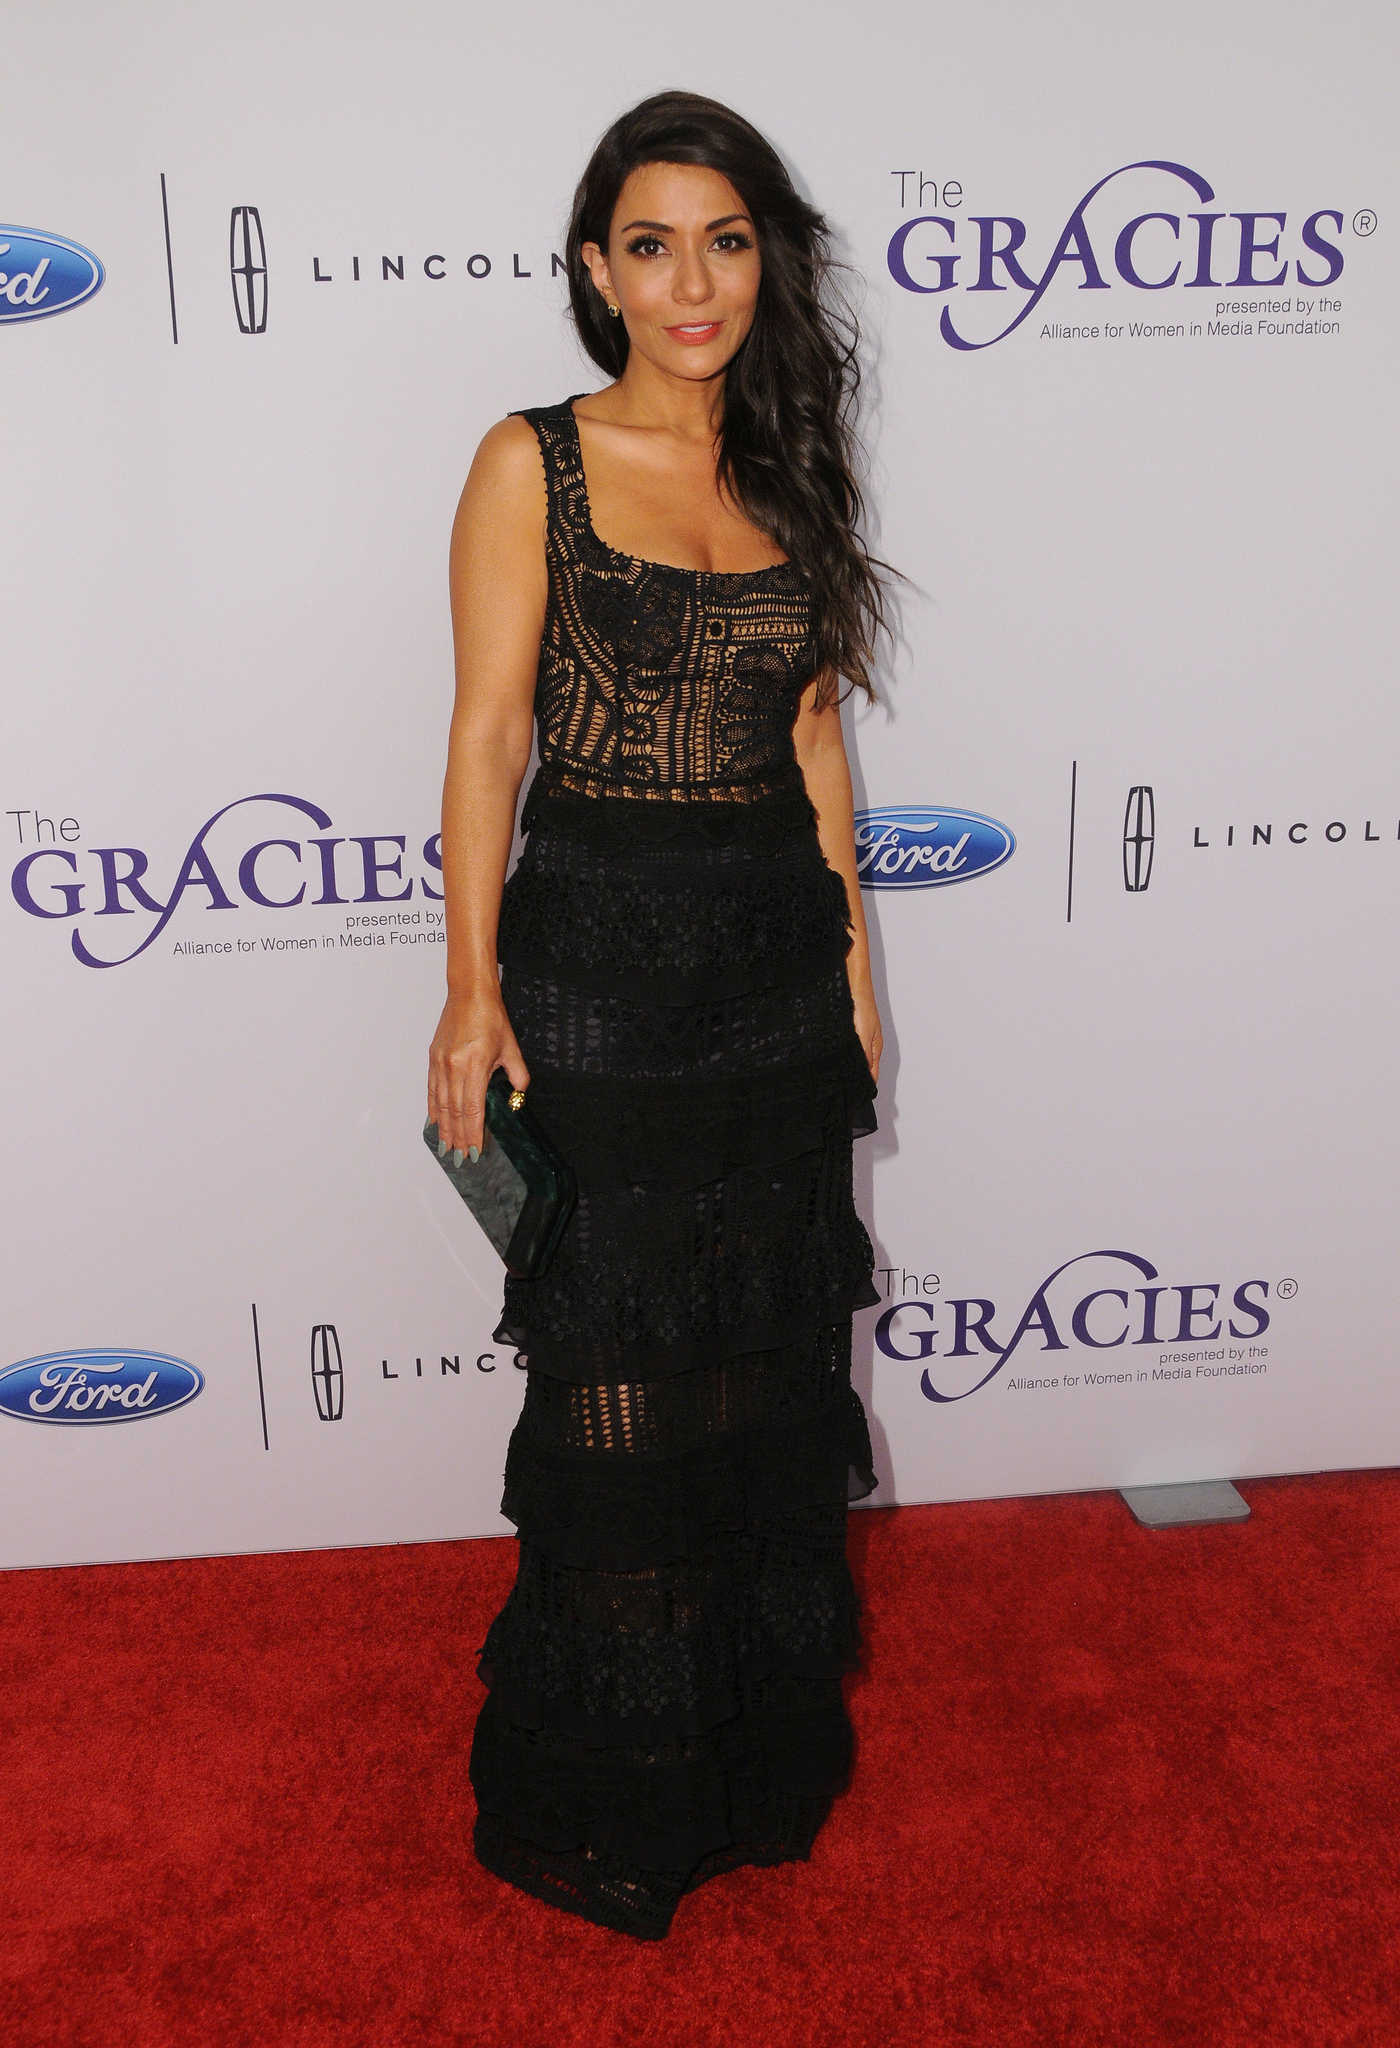 Marisol Nichols at the 42nd Annual Gracie Awards at the Beverly Wilshire Hotel in Los Angeles 06/06/2017